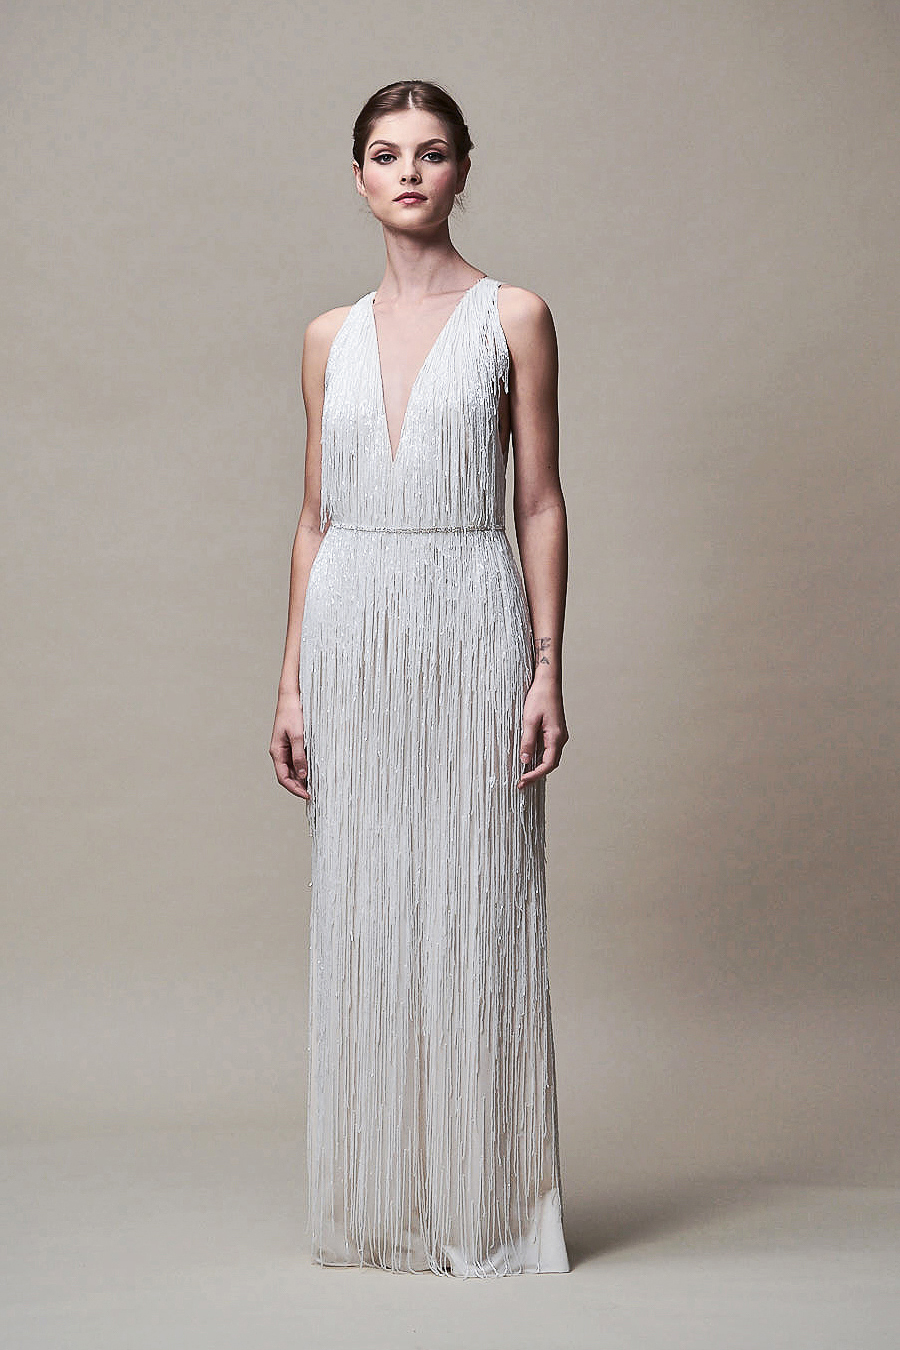 jenny yoo dress fall 2018 v-neck sleeveless fringe